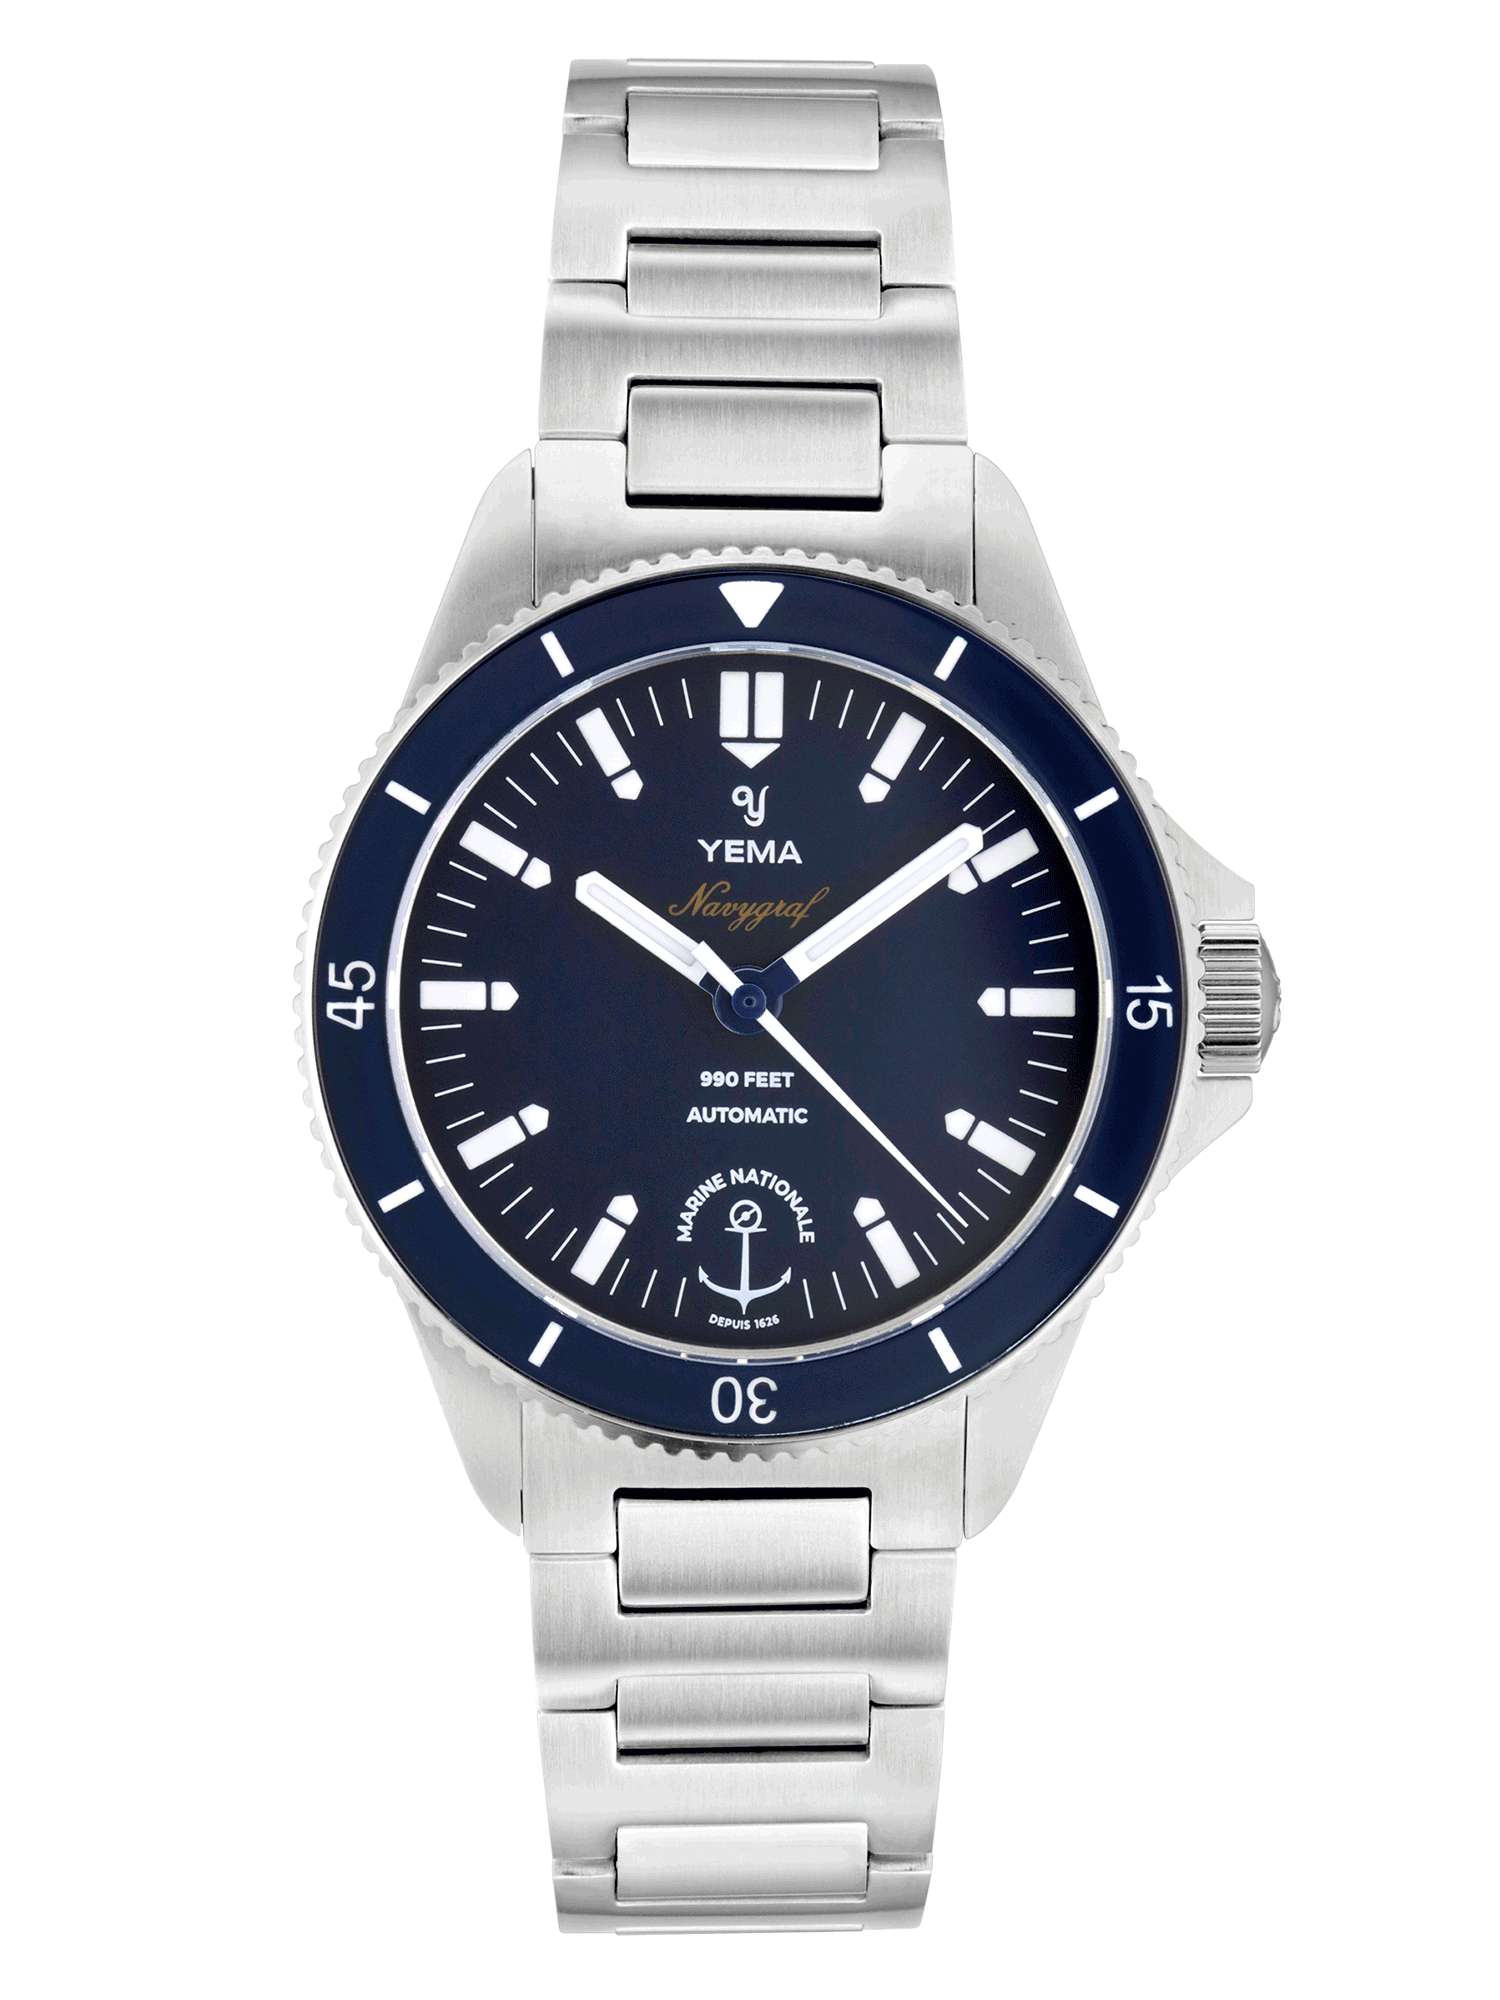 YEMA Navygraf Marine nationale